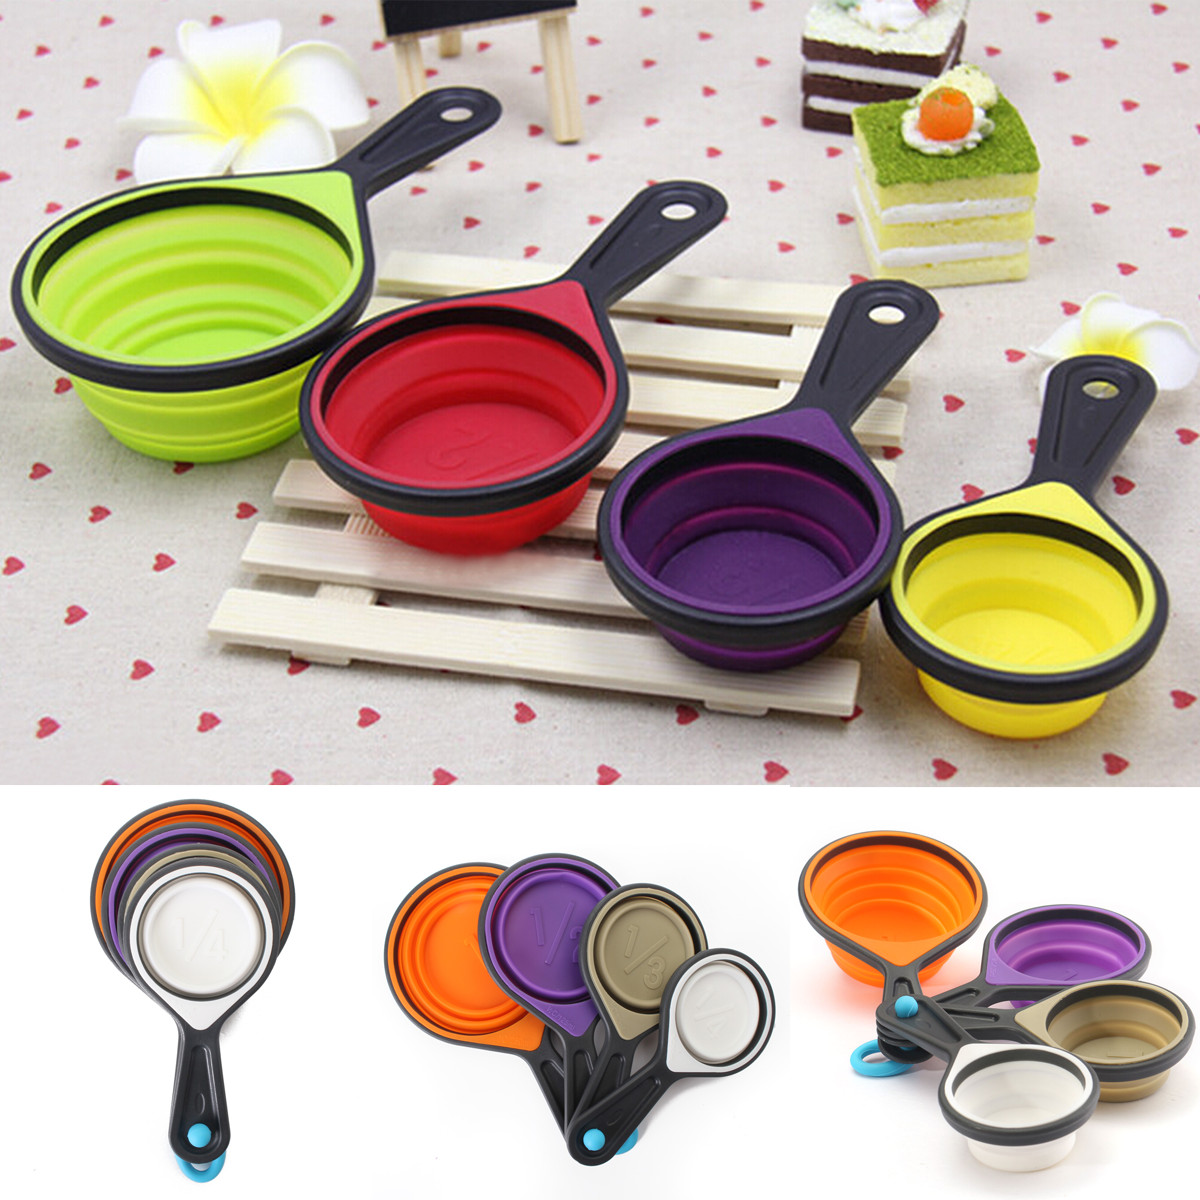 4pcs Silicone Measuring Cake Cup Spoon Kitchen Tool